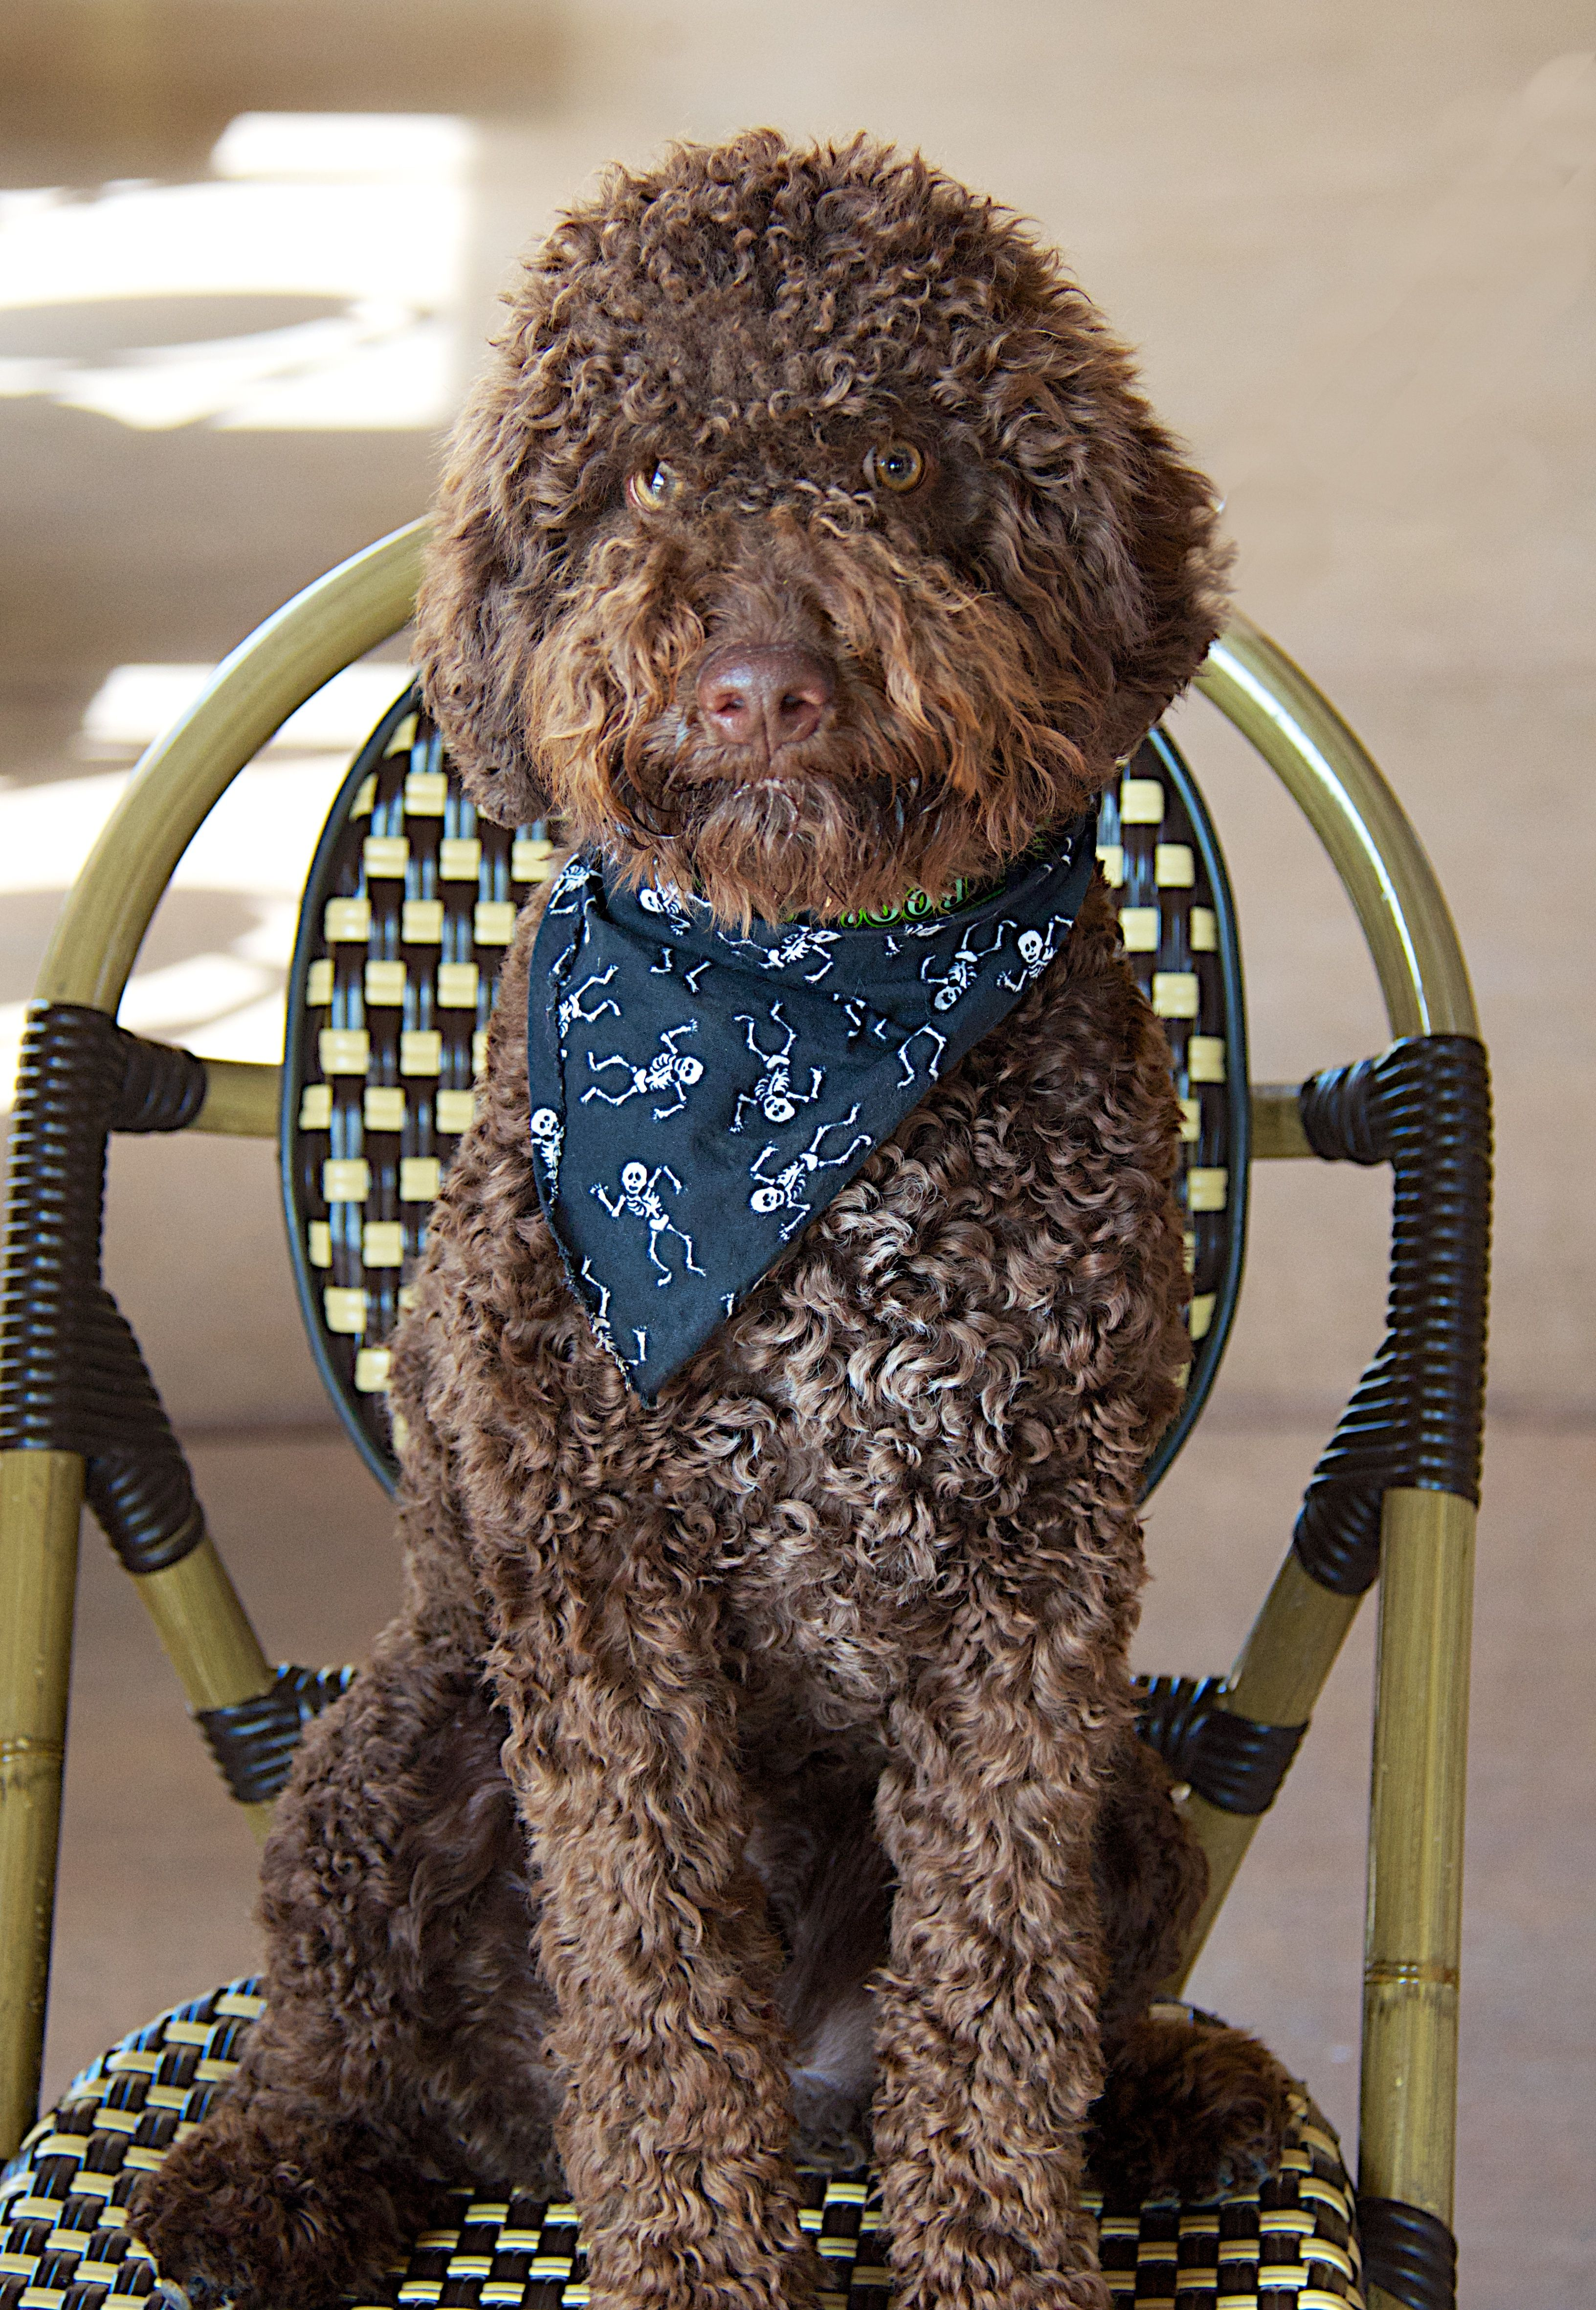 Marco Our Mascot Is A Lagotto Romagnolo That Is In Training To